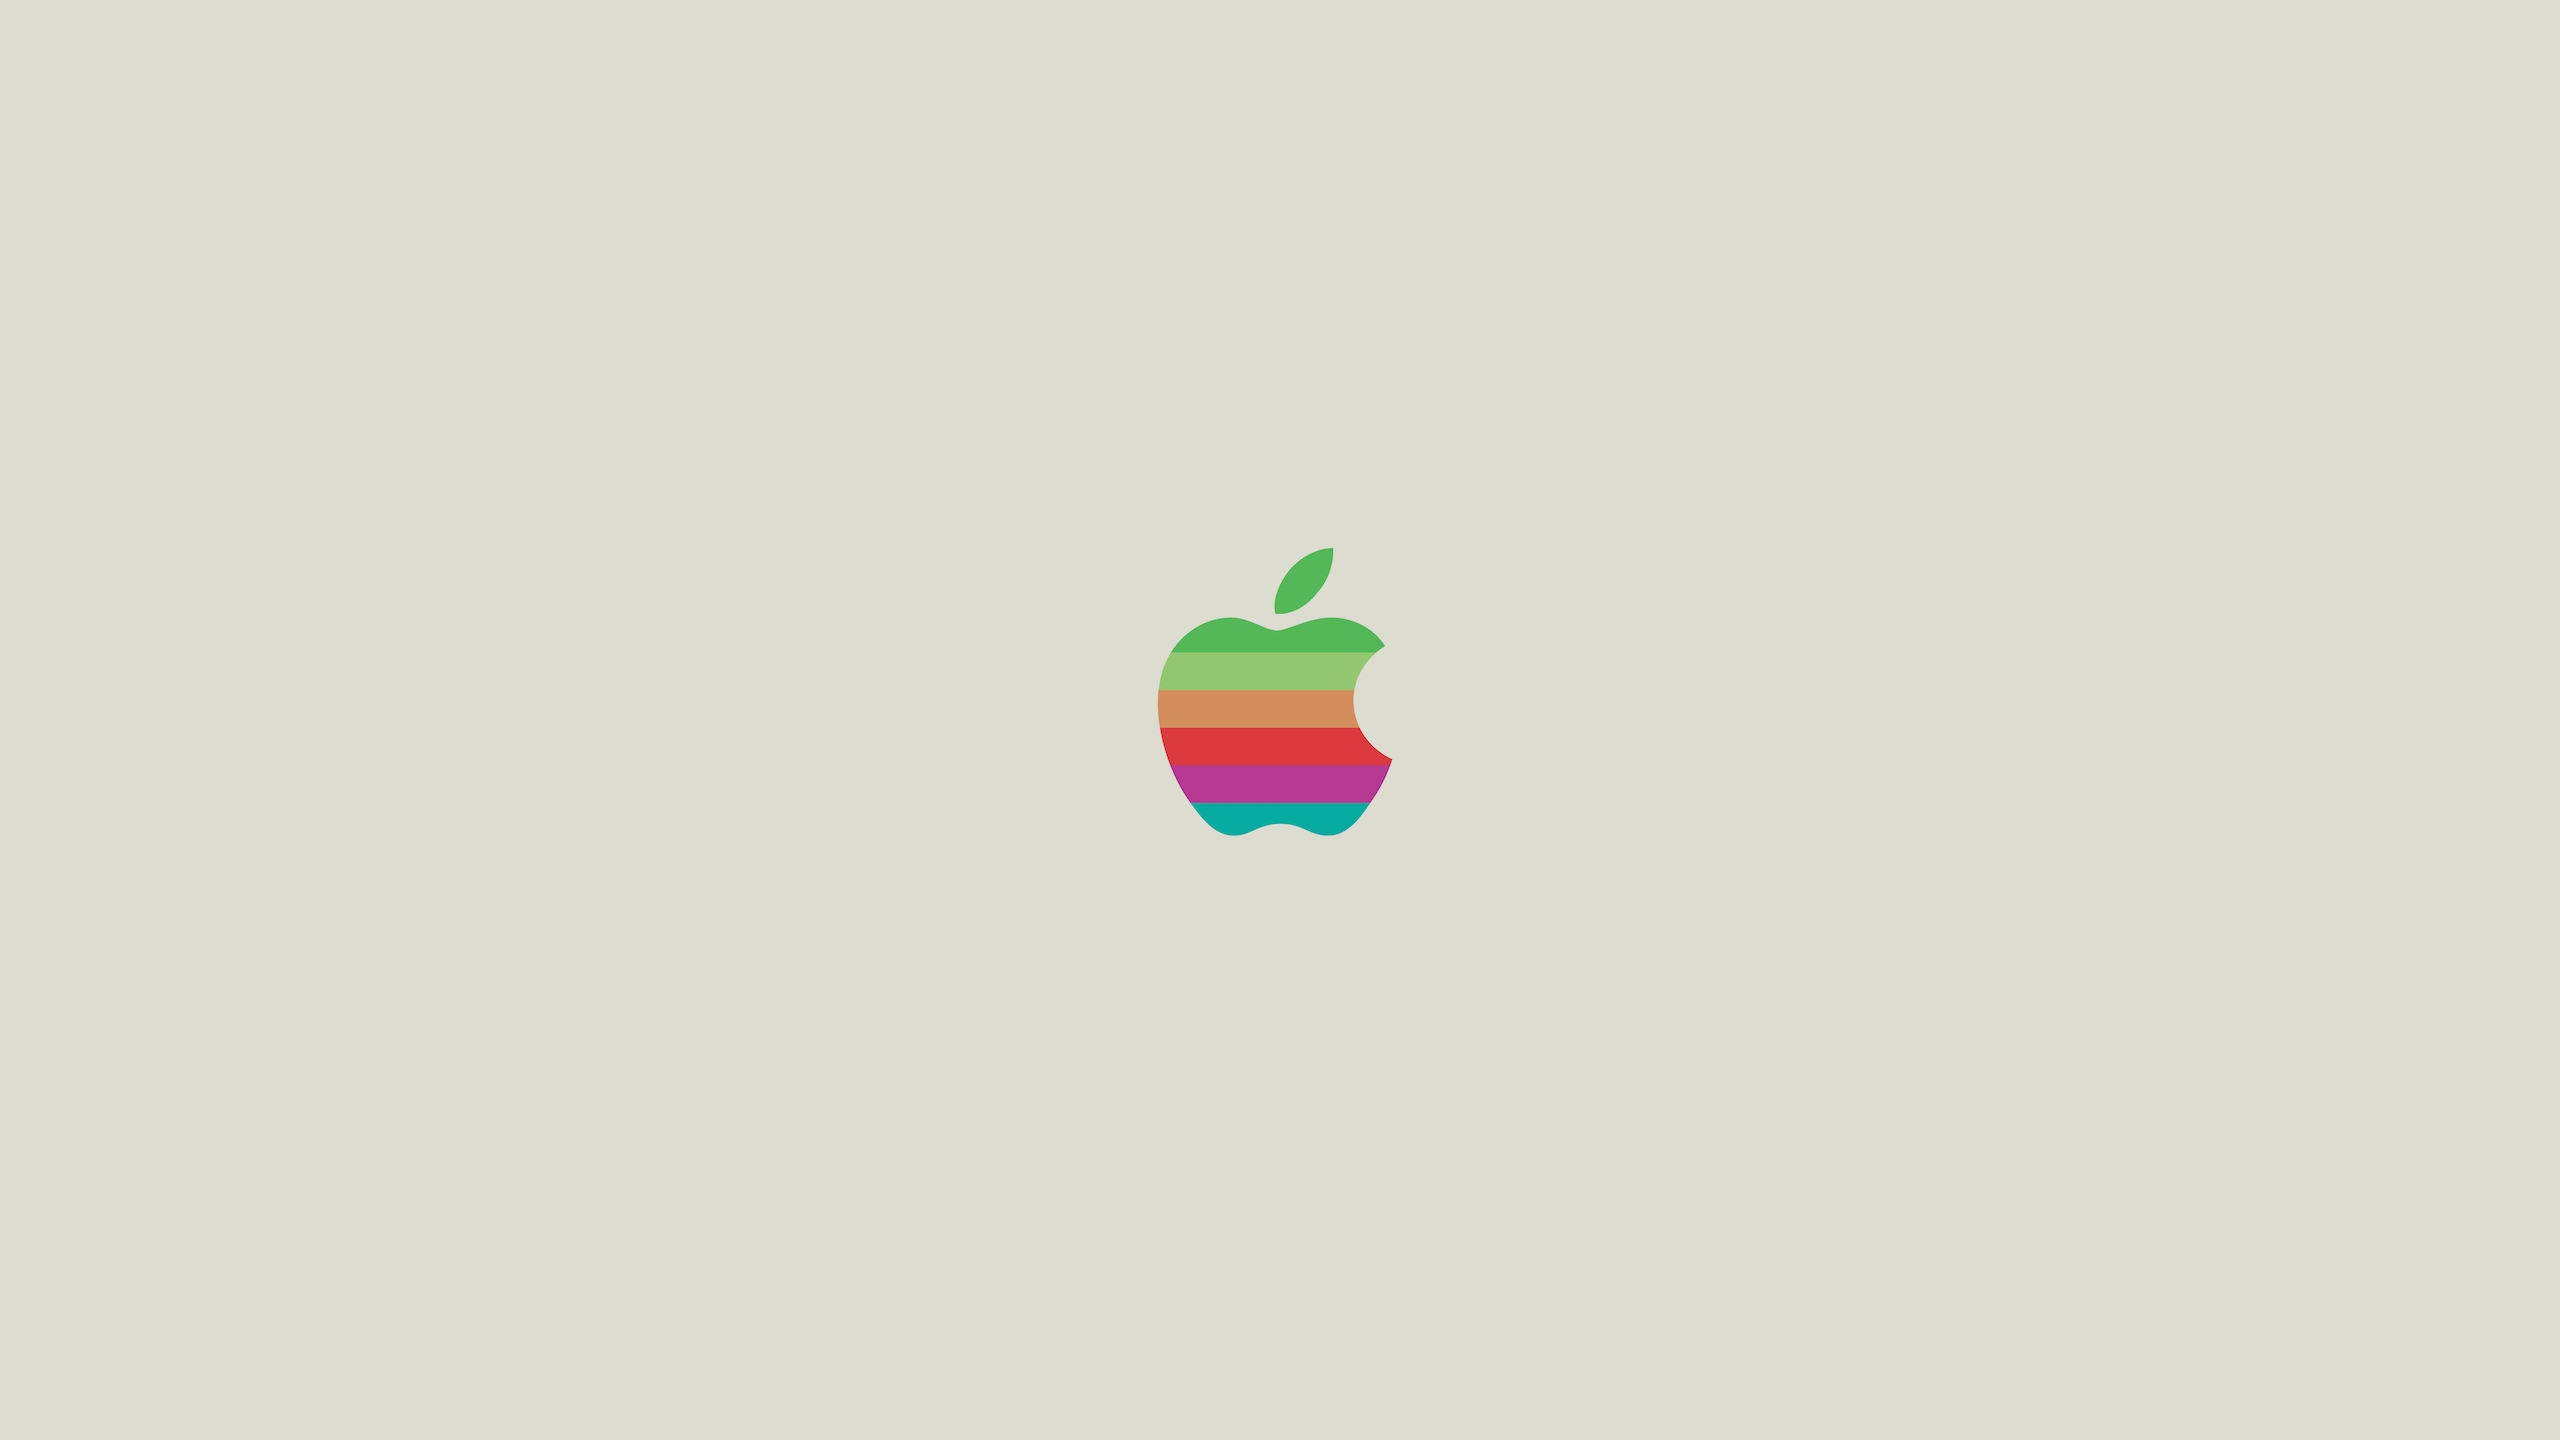 wwdc16 apple logo wallpaper@bonney - bonney.io